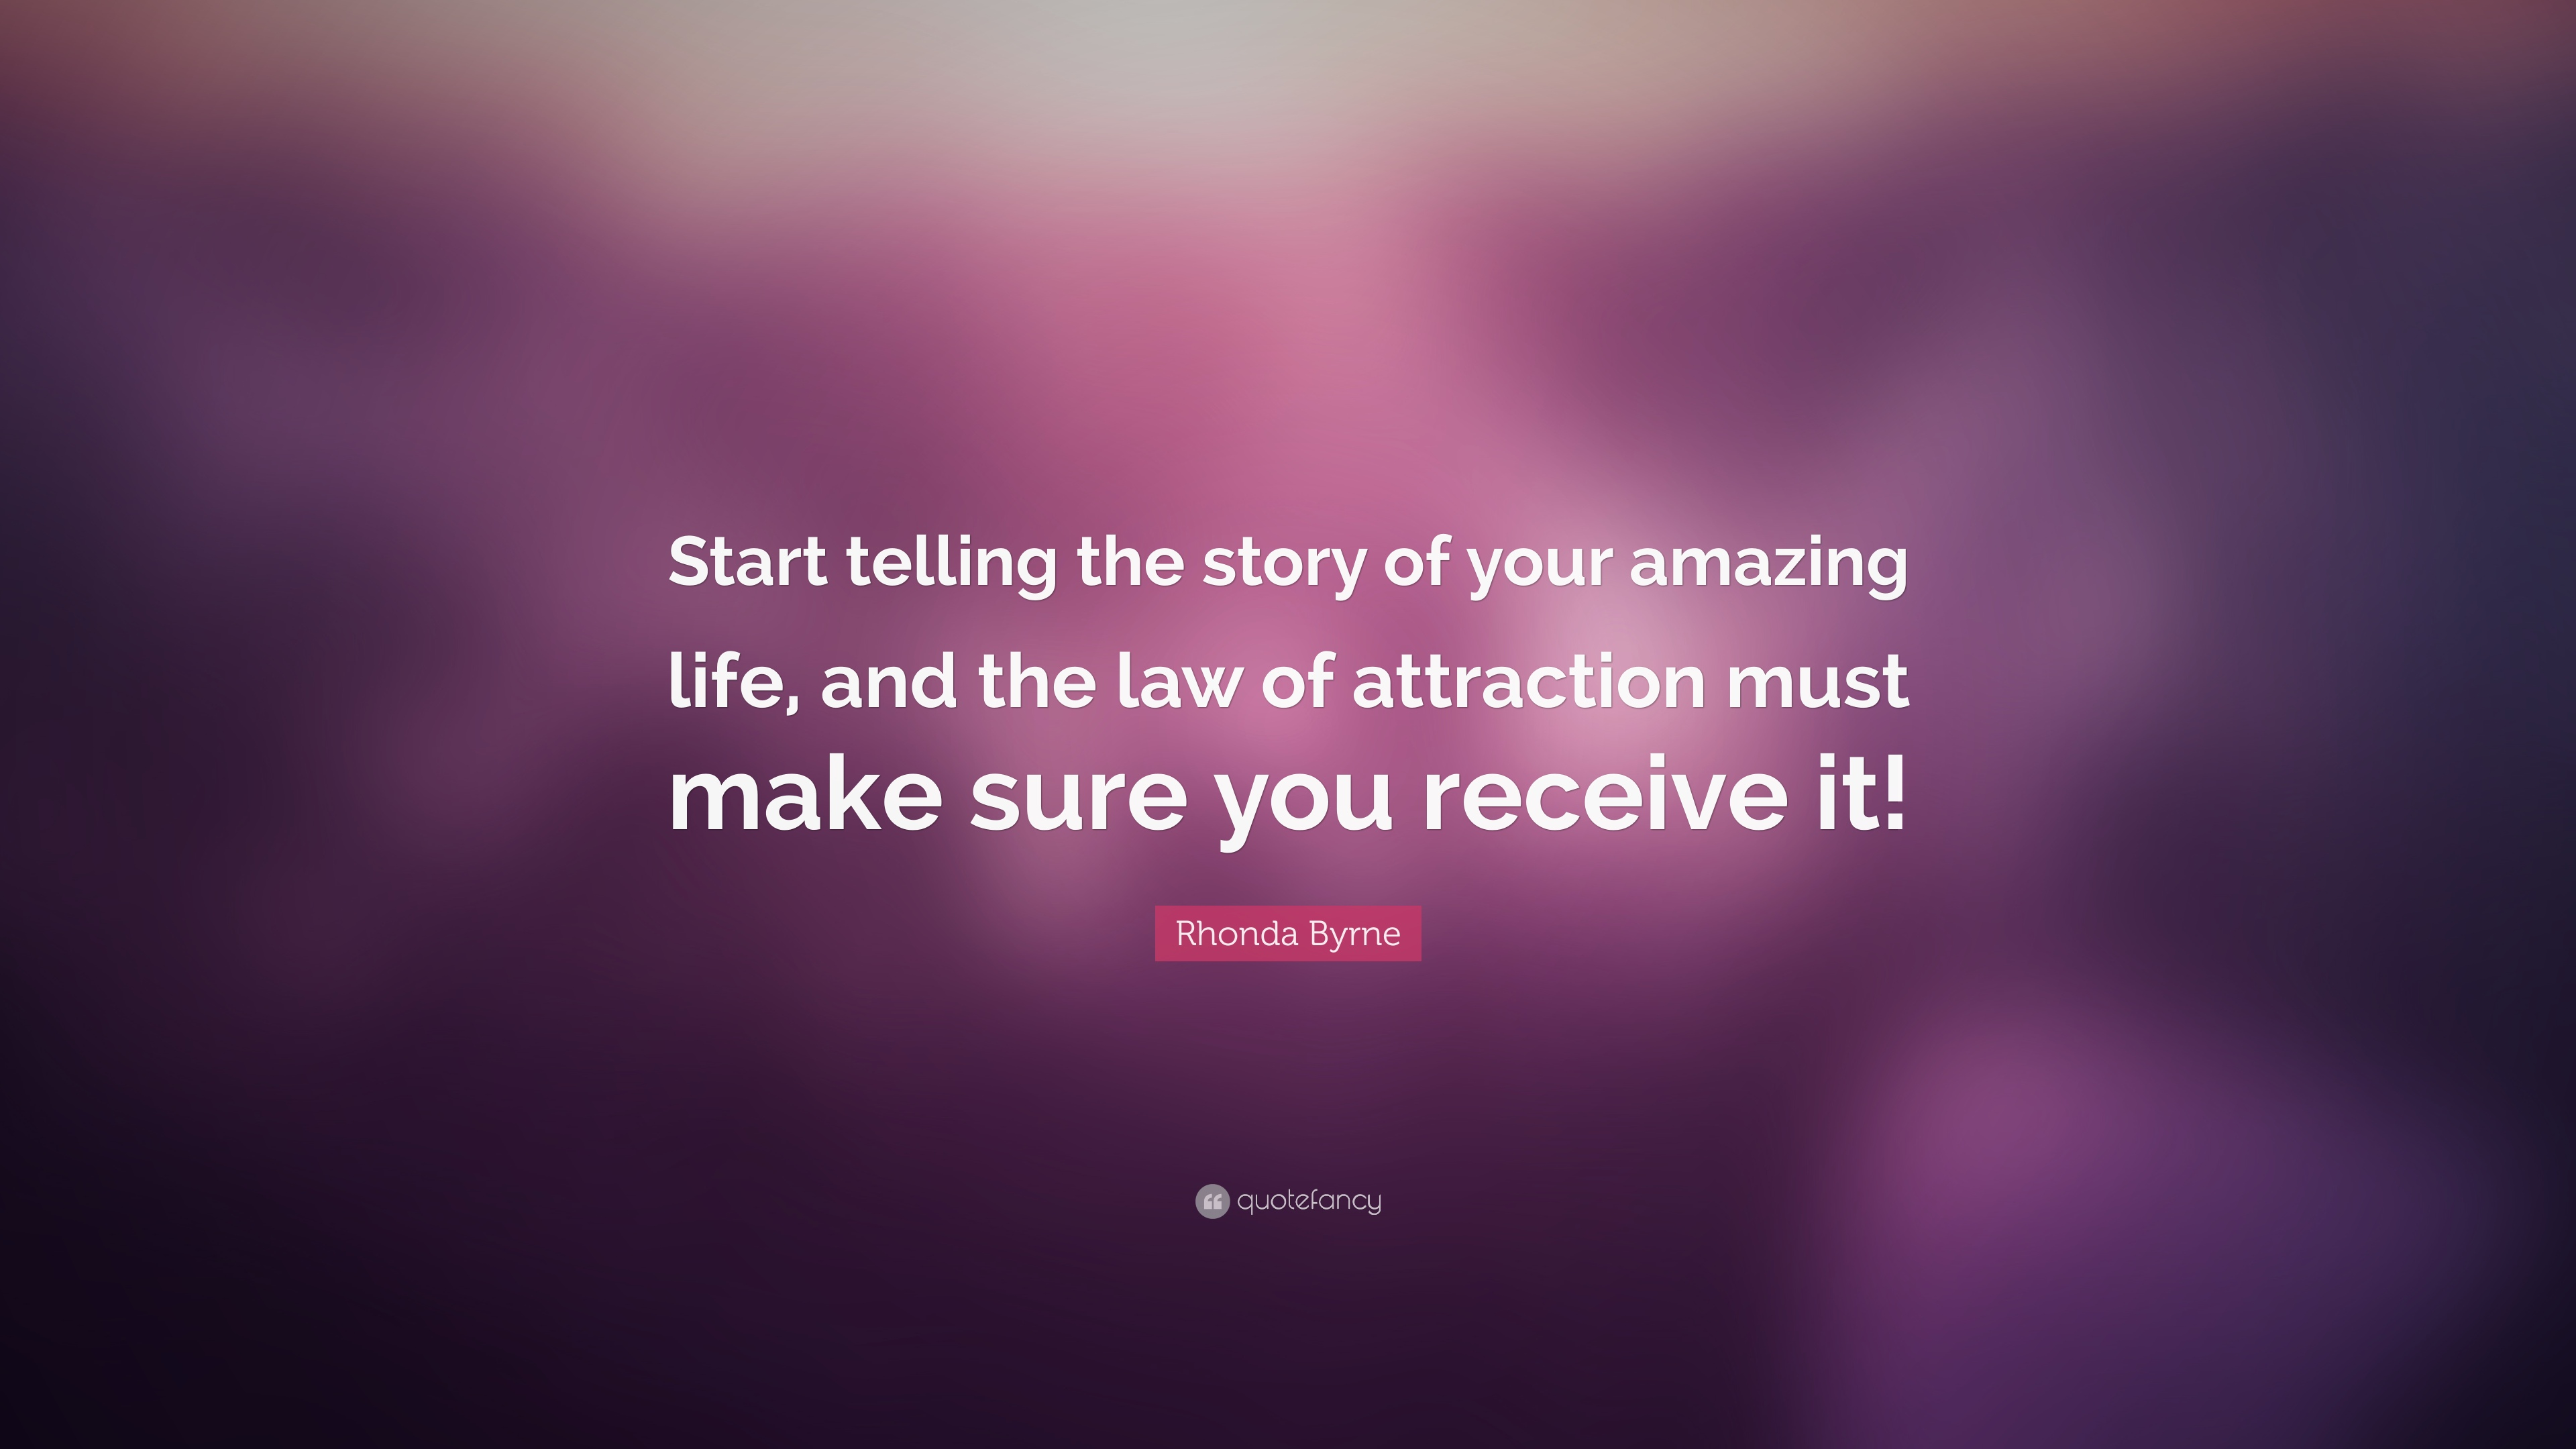 Law Of Attraction Quotes Law Of Attraction Quotes 40 Wallpapers  Quotefancy